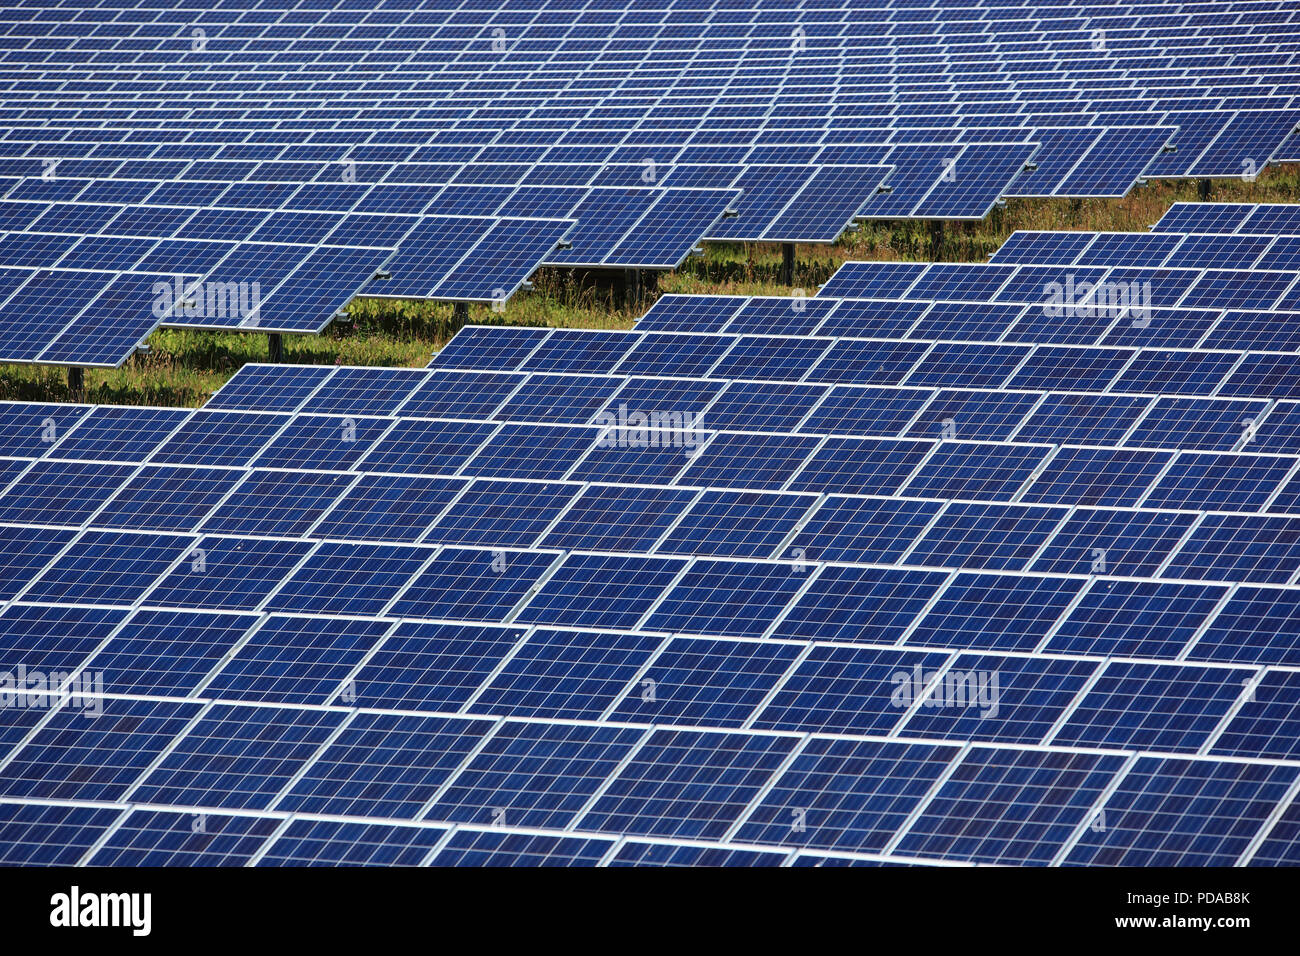 photovoltaic power station, a solar park - Stock Image